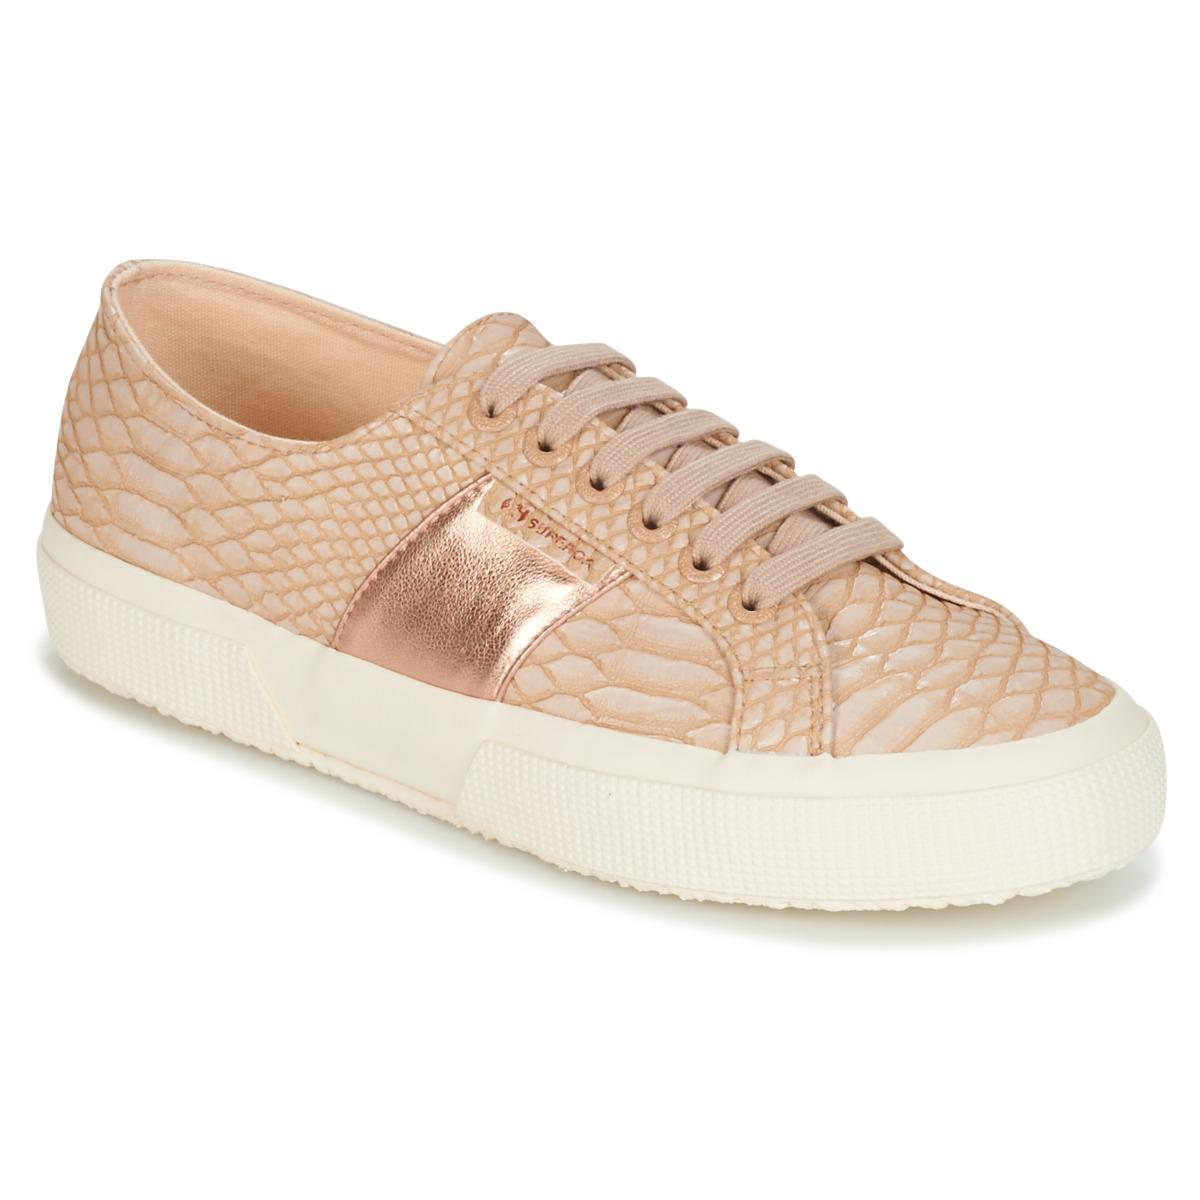 2750-pusnakew, Womens Low Trainers Superga